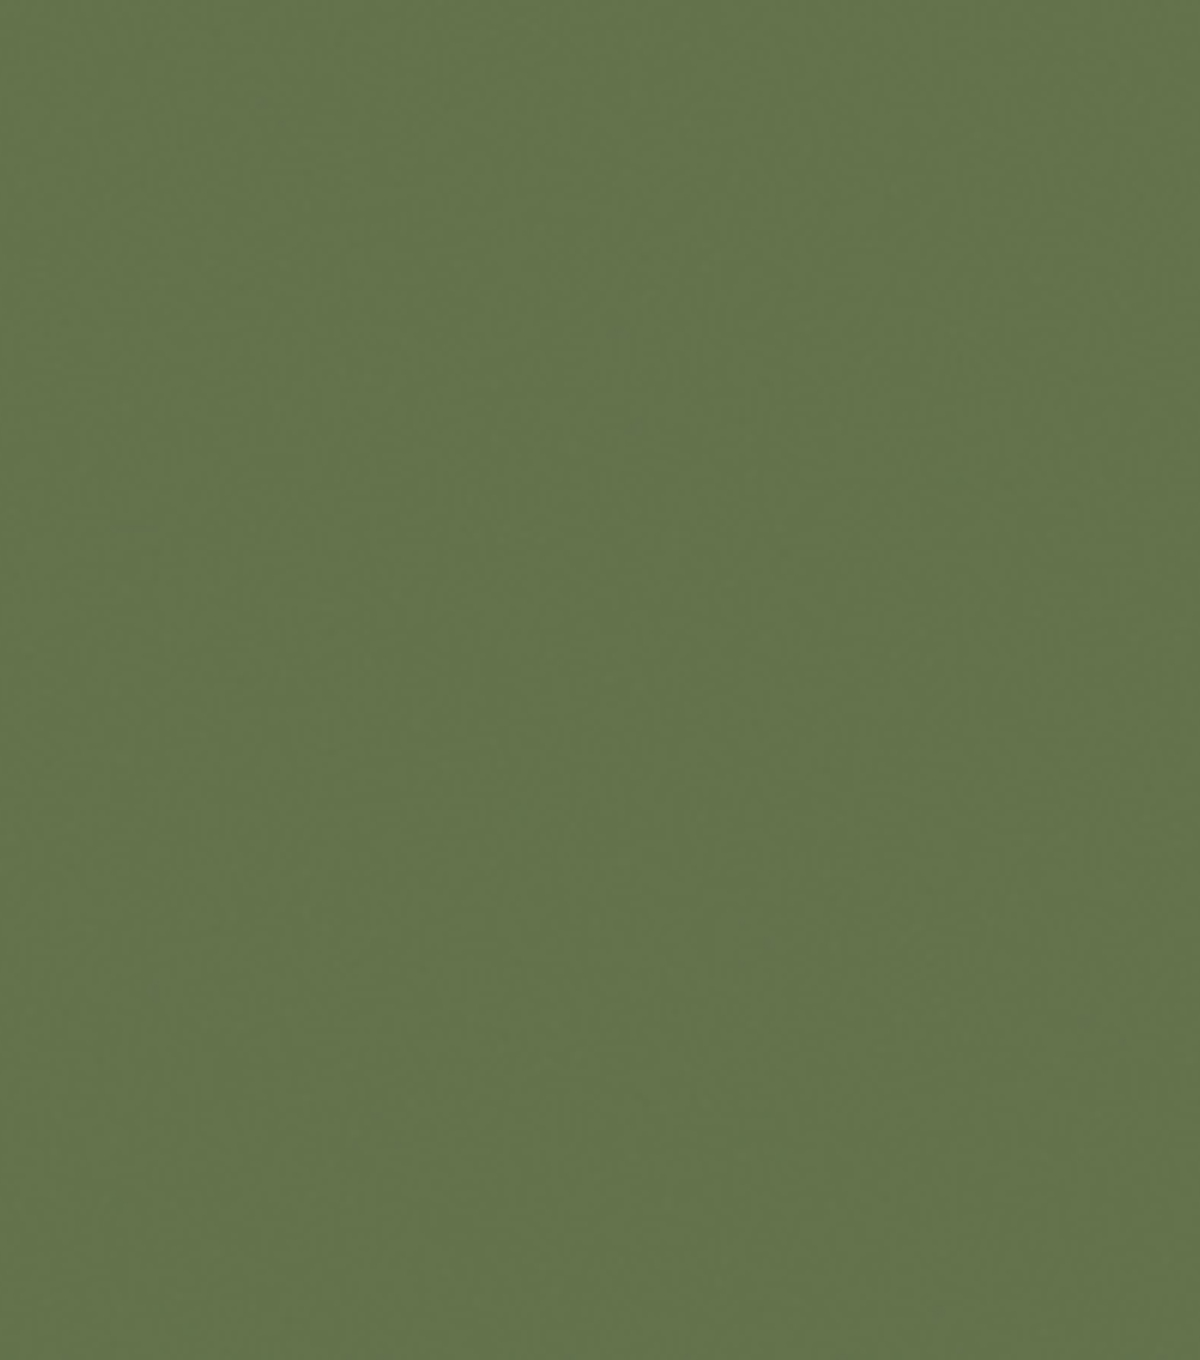 Delta Ceramcoat Acrylic Paint 2 oz, English Yew Green